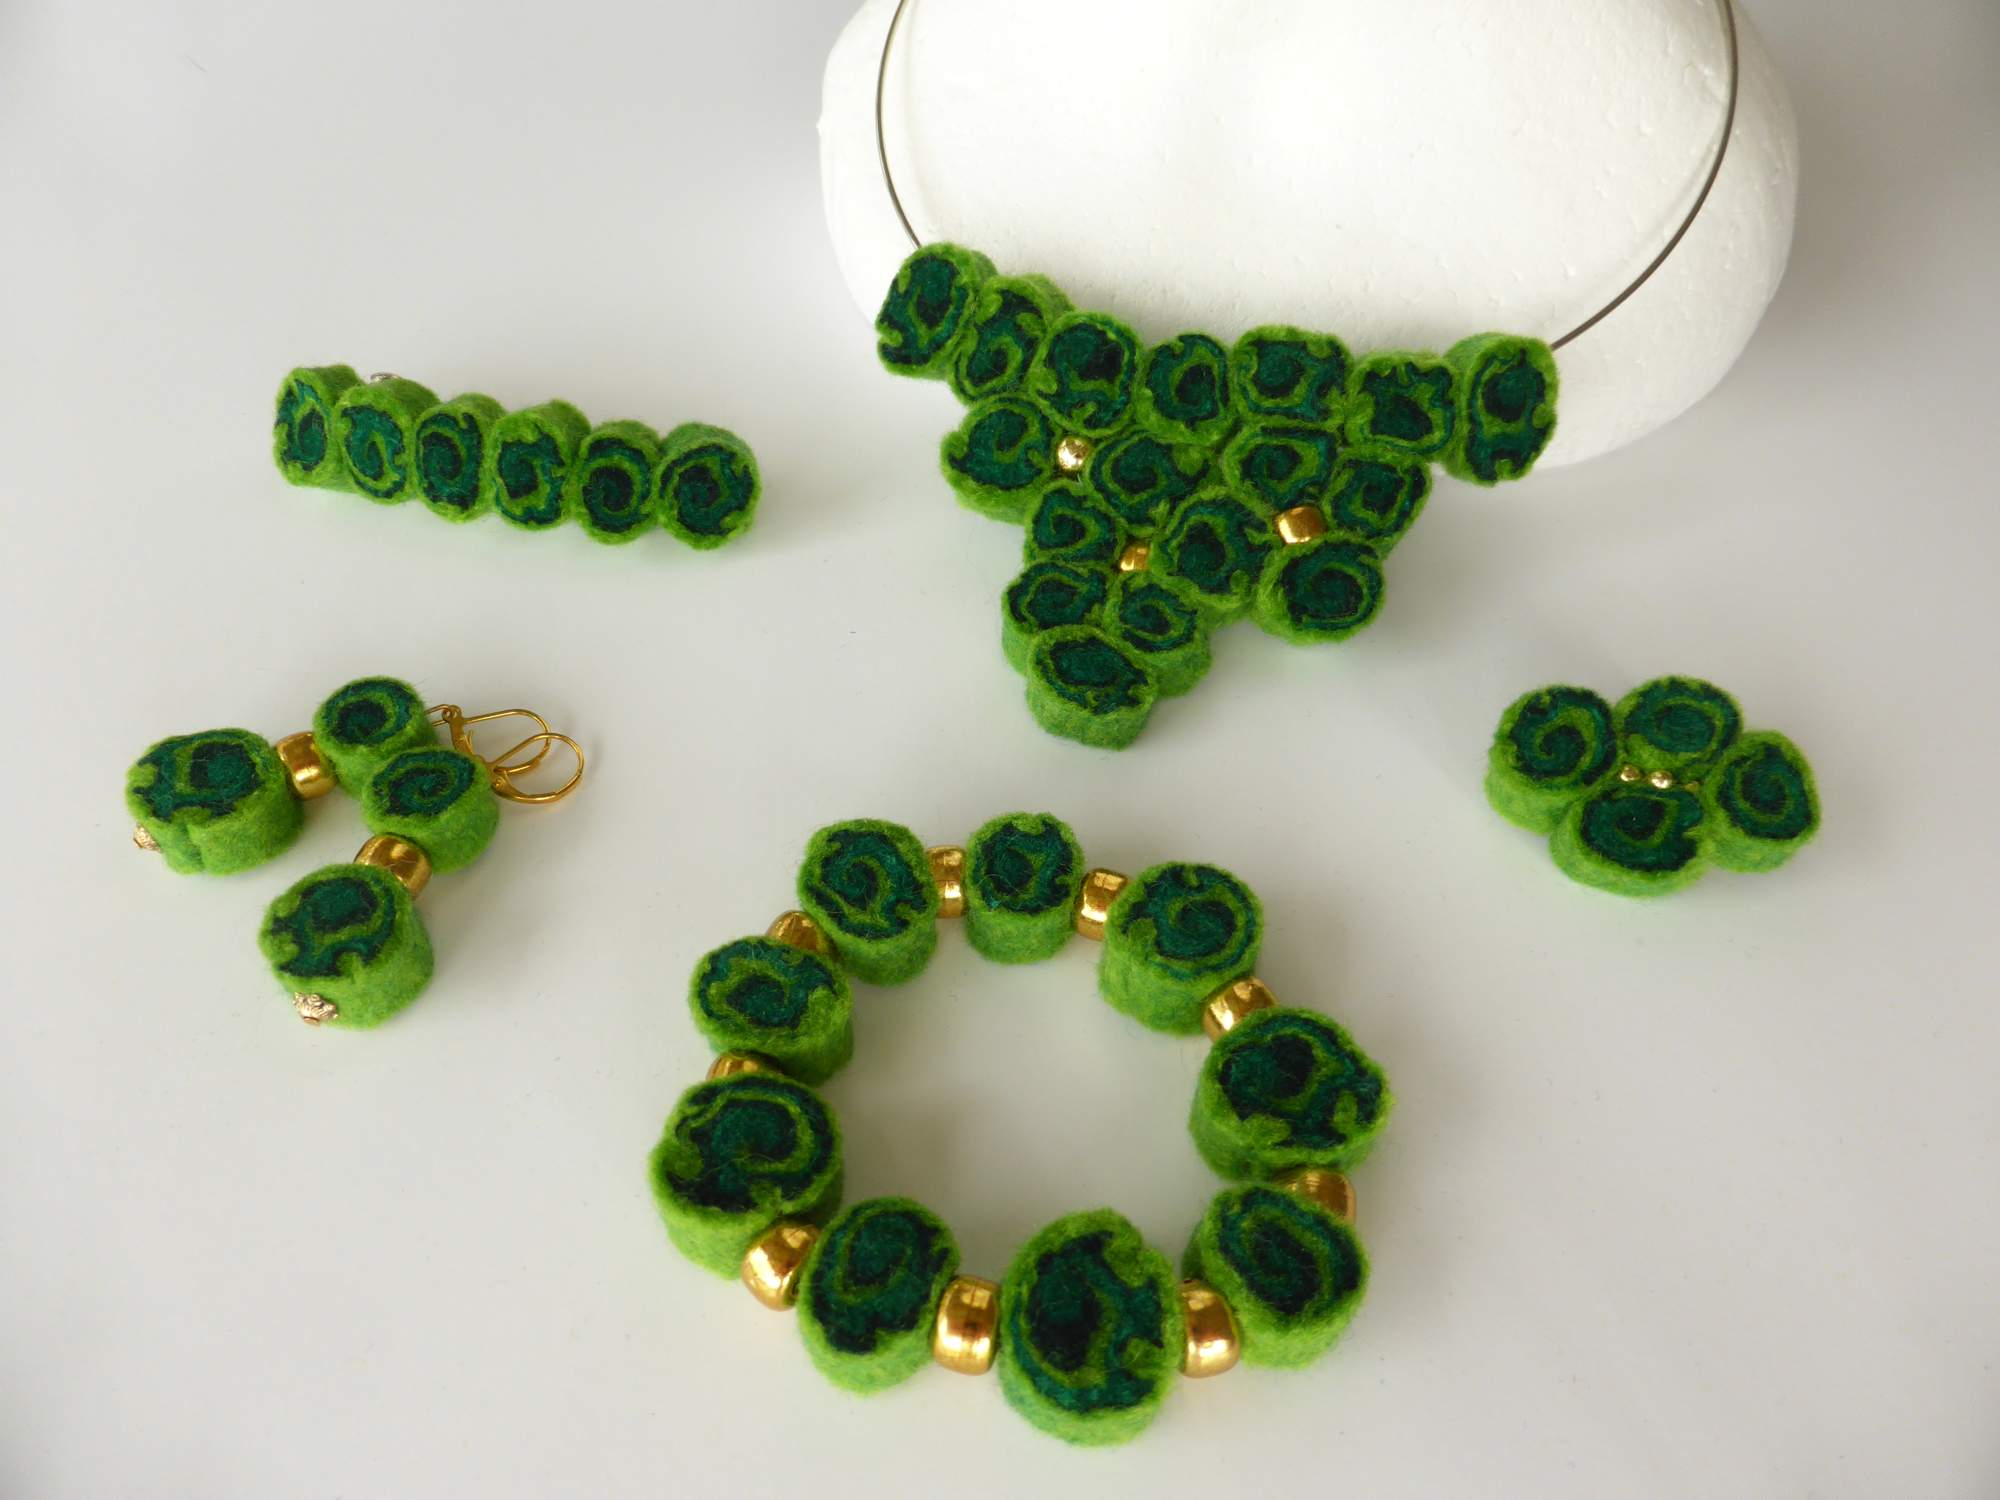 Green Felt Spiral Jewellery by Andrea McCallum